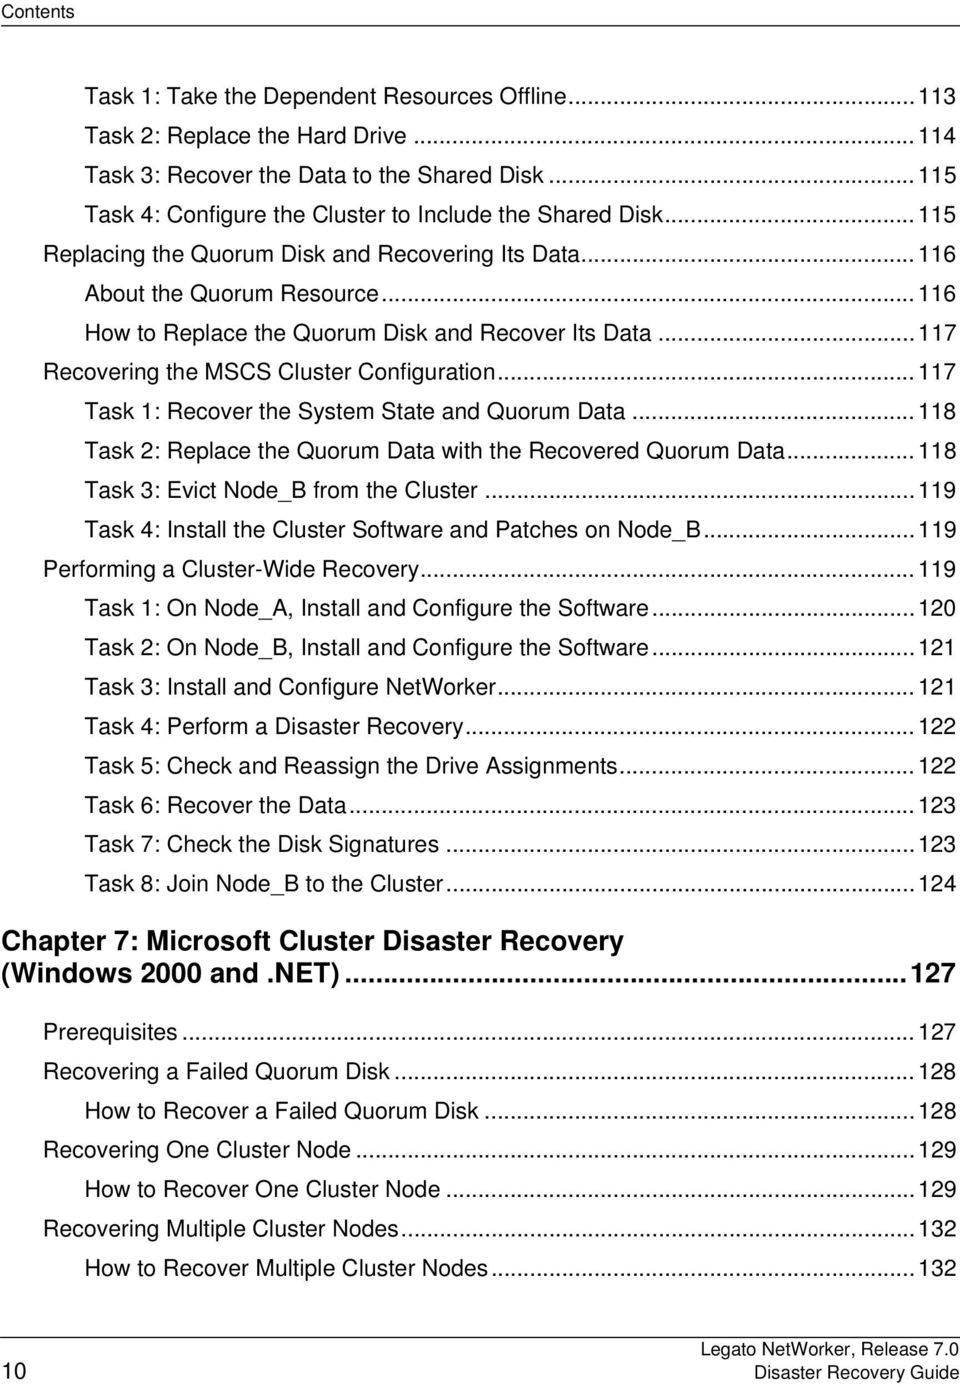 ..117. Recovering the MSCS Cluster Configuration...117. Task 1: Recover the System State and Quorum Data...118. Task 2: Replace the Quorum Data with the Recovered Quorum Data...118. Task 3: Evict Node_B from the Cluster.